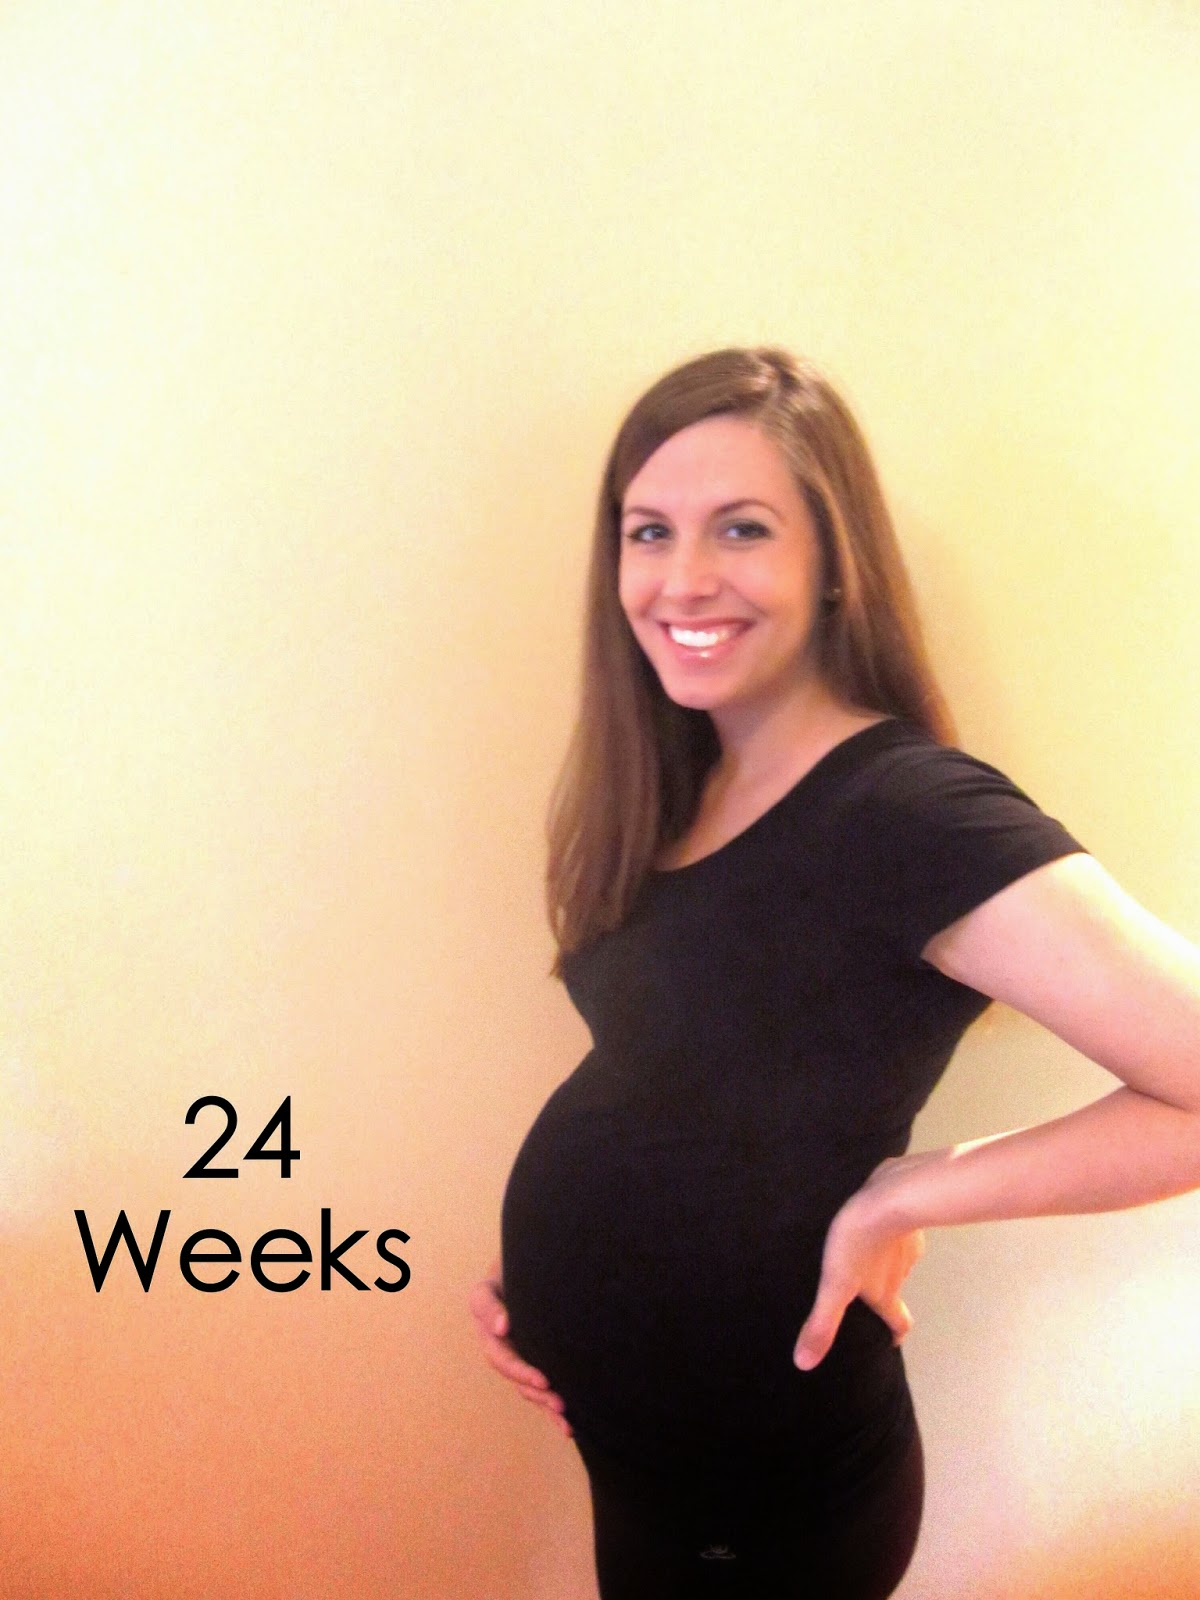 Oh So Bright: 24 Weeks Pregnant